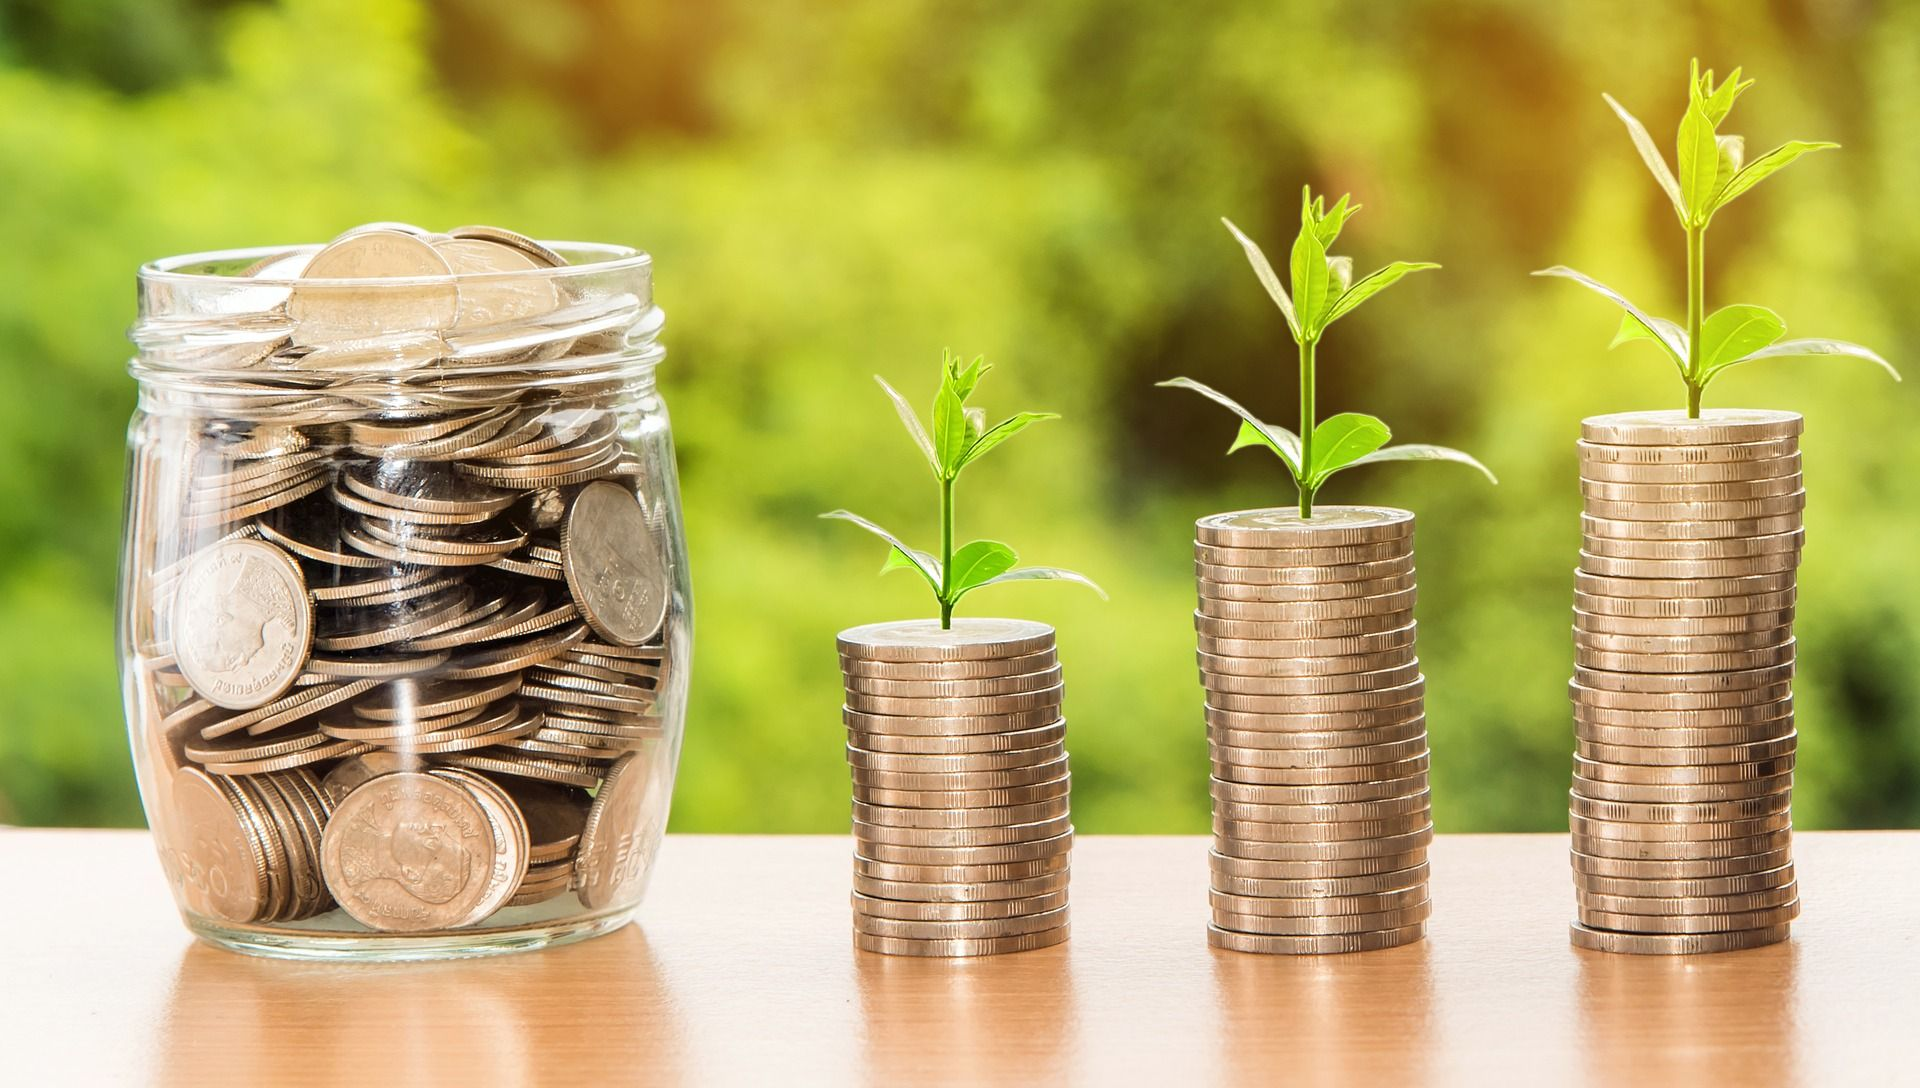 Coins in a jar next to stacked up coins with small plants sprouting out of them. | Source: Shutterstock